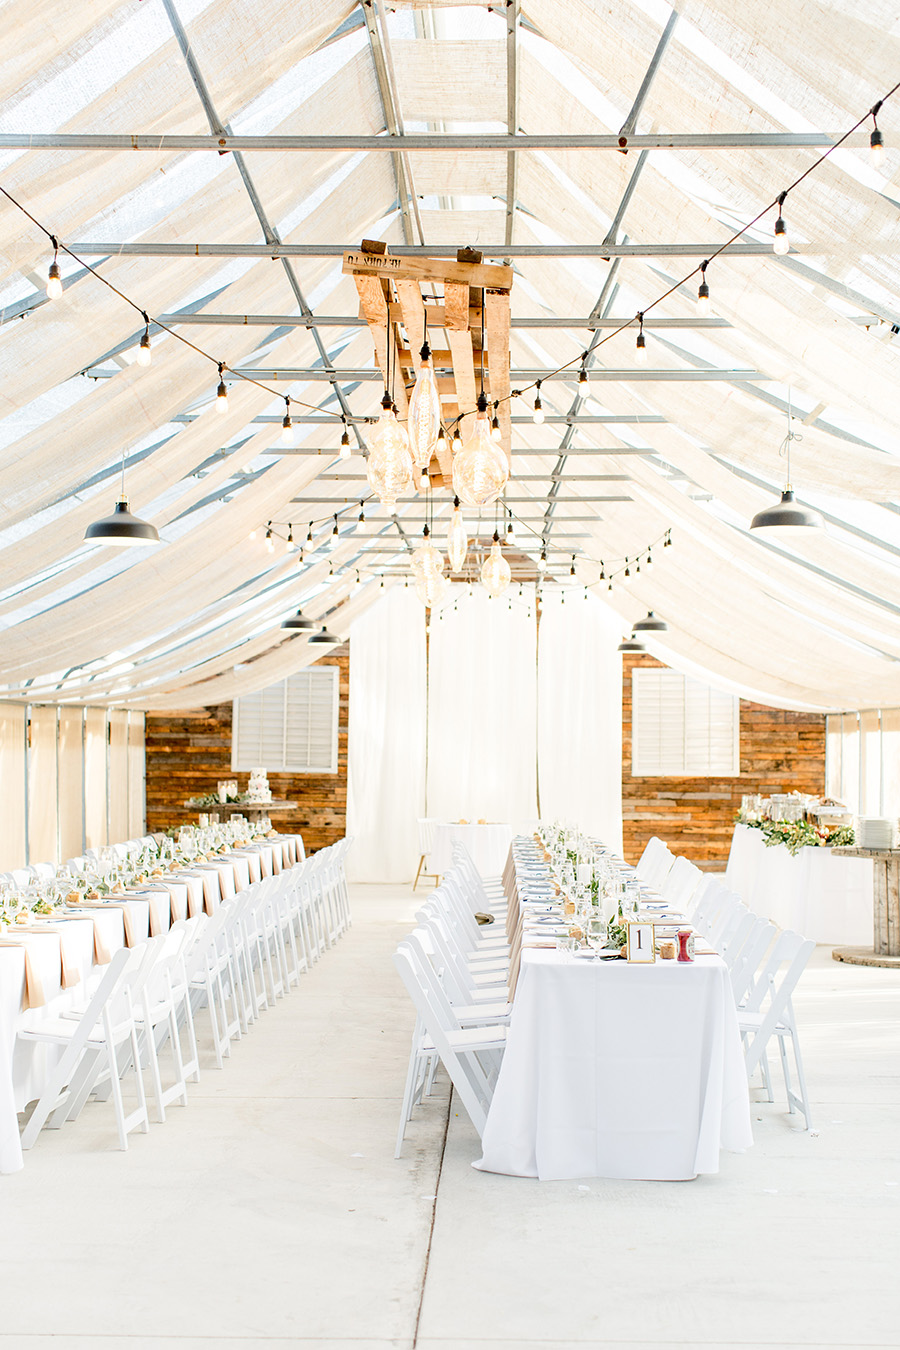 Minimalist wedding reception at Bast Brothers greenhouse